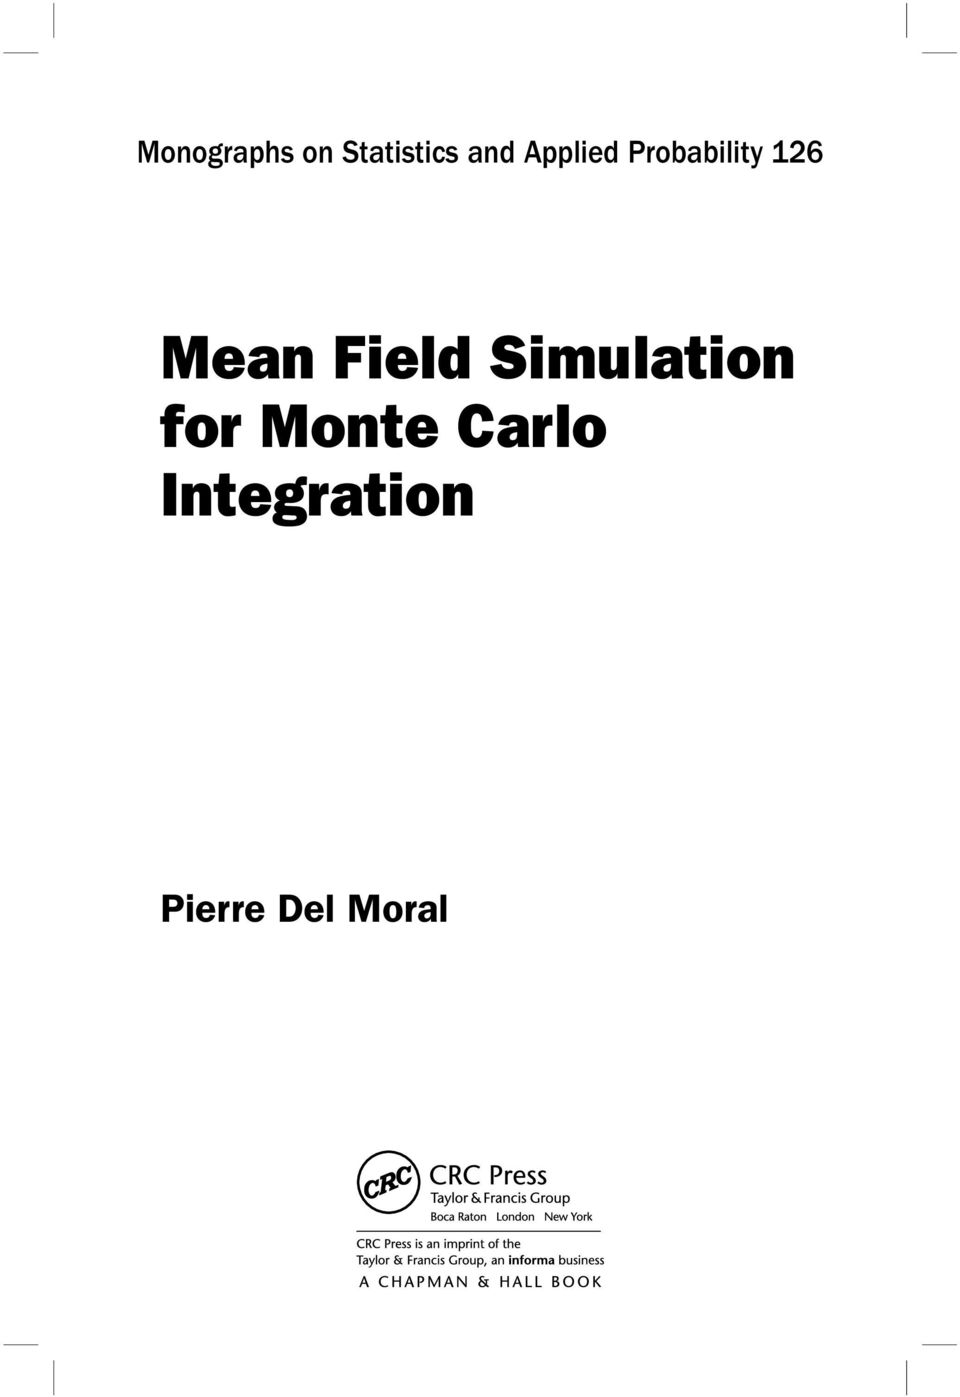 Field Simulation for Monte